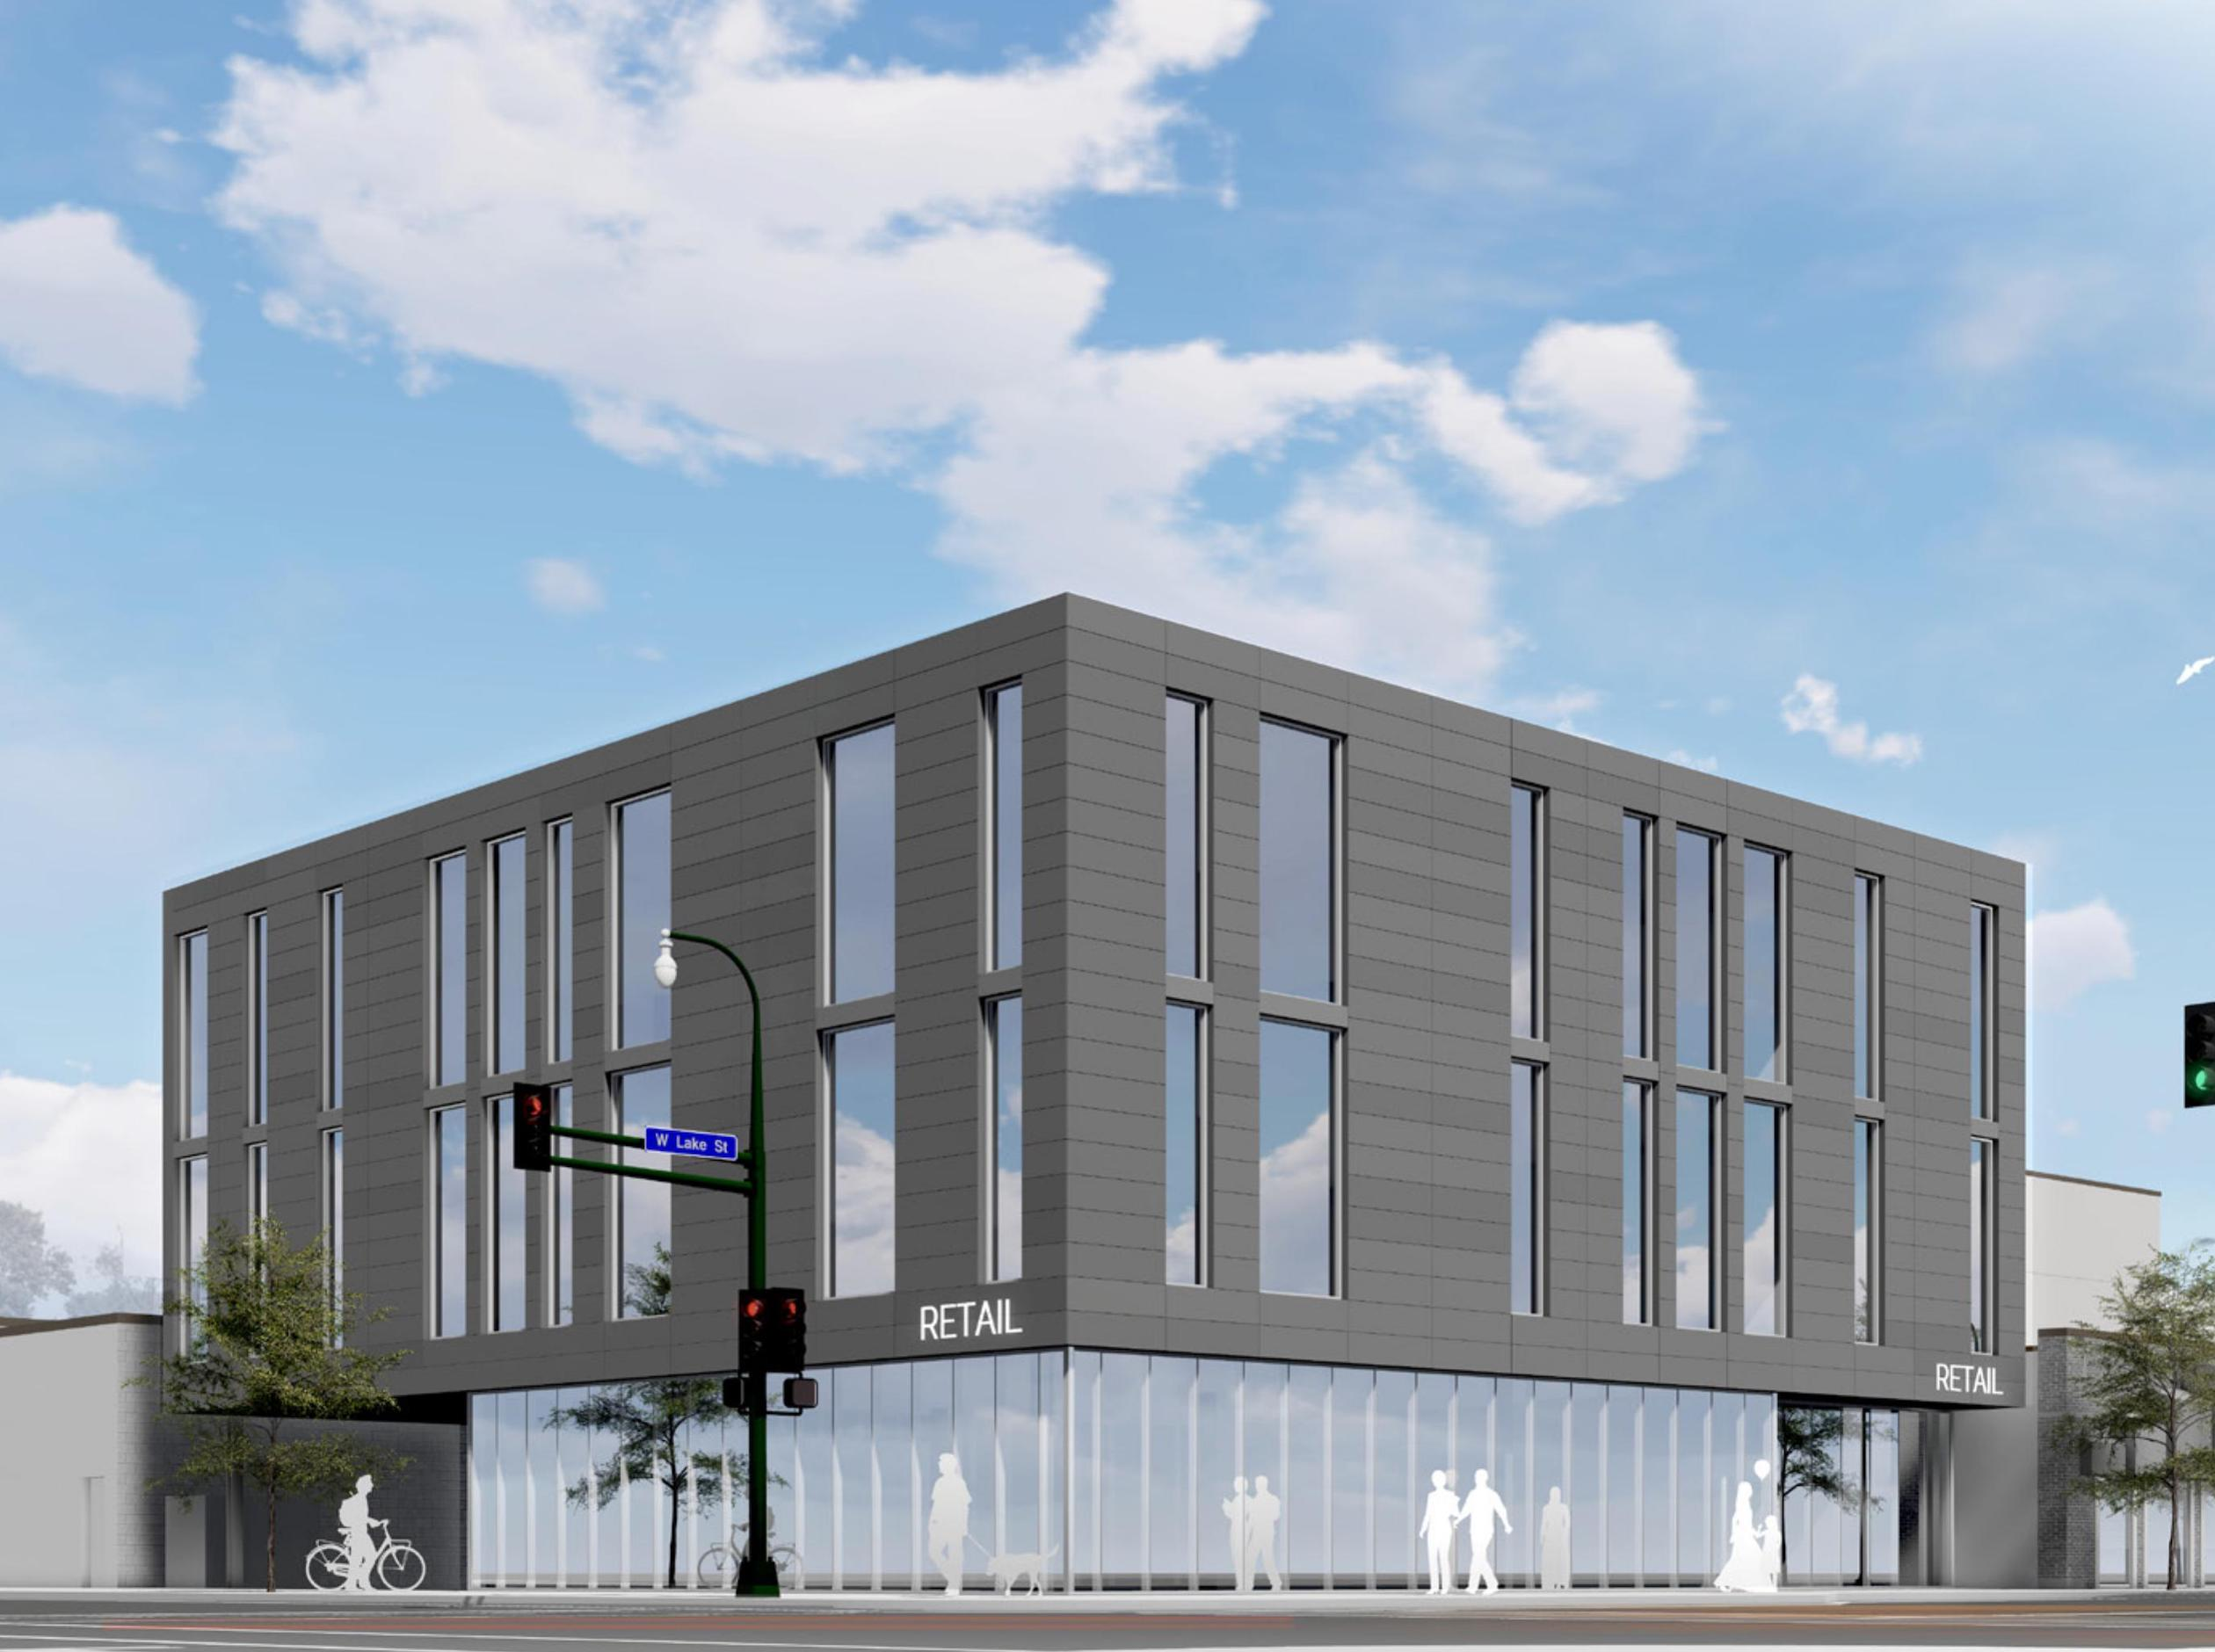 Ibrahim Demmaj plans to use the first floor of a new three-story building at Lake & Grand as a showroom for his furniture store. Rendering by UrbanWorks via City of Minneapolis